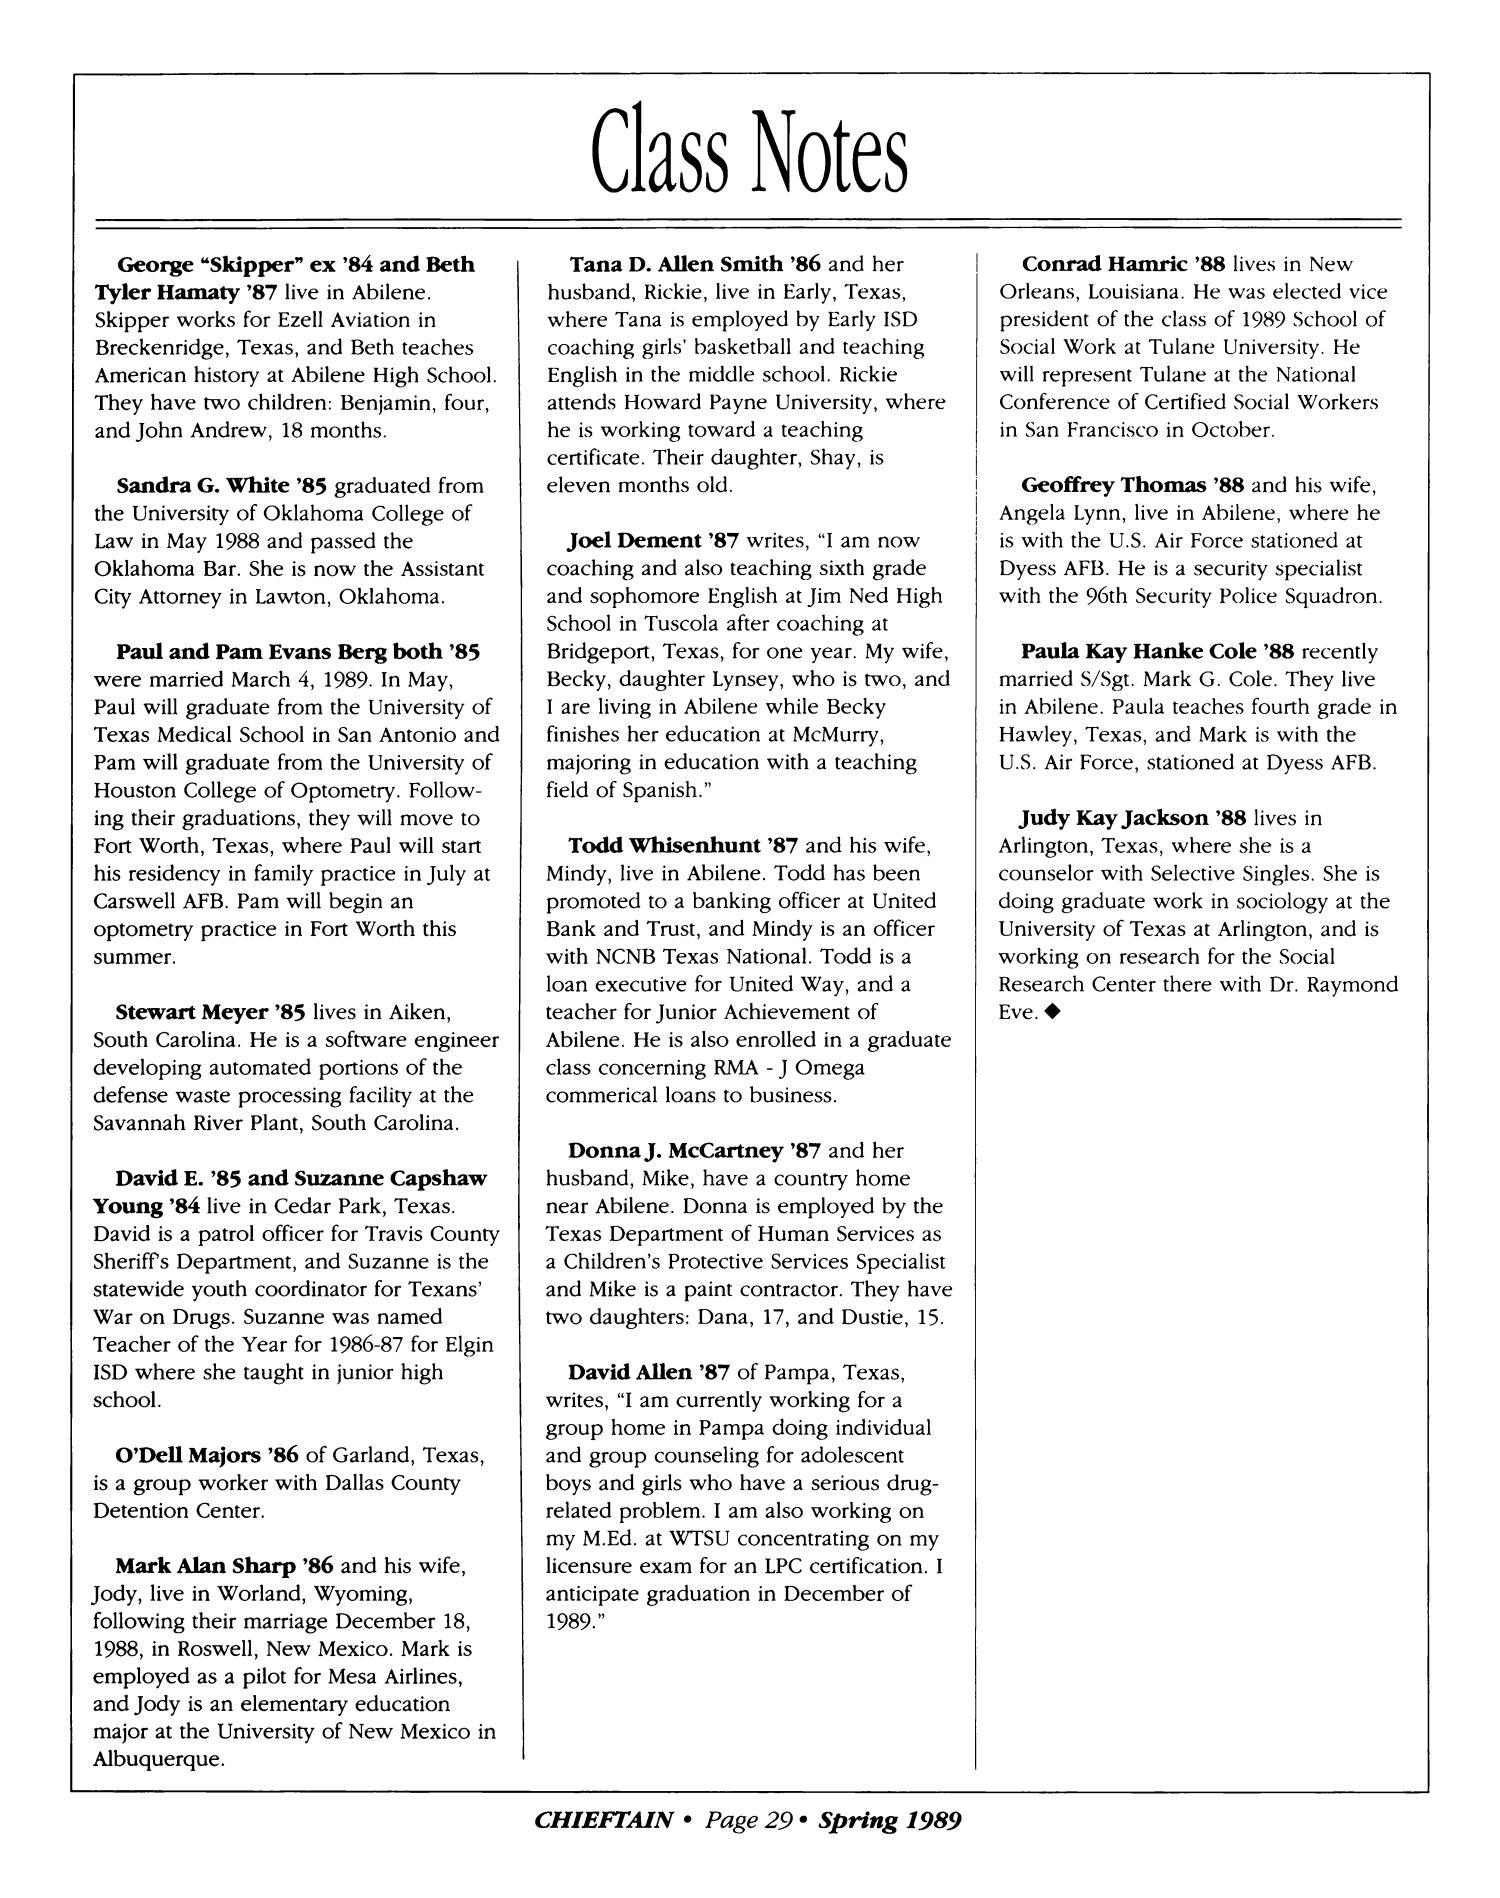 Chieftain Volume 39 Number 1 Spring 1989 Page 29 The Portal